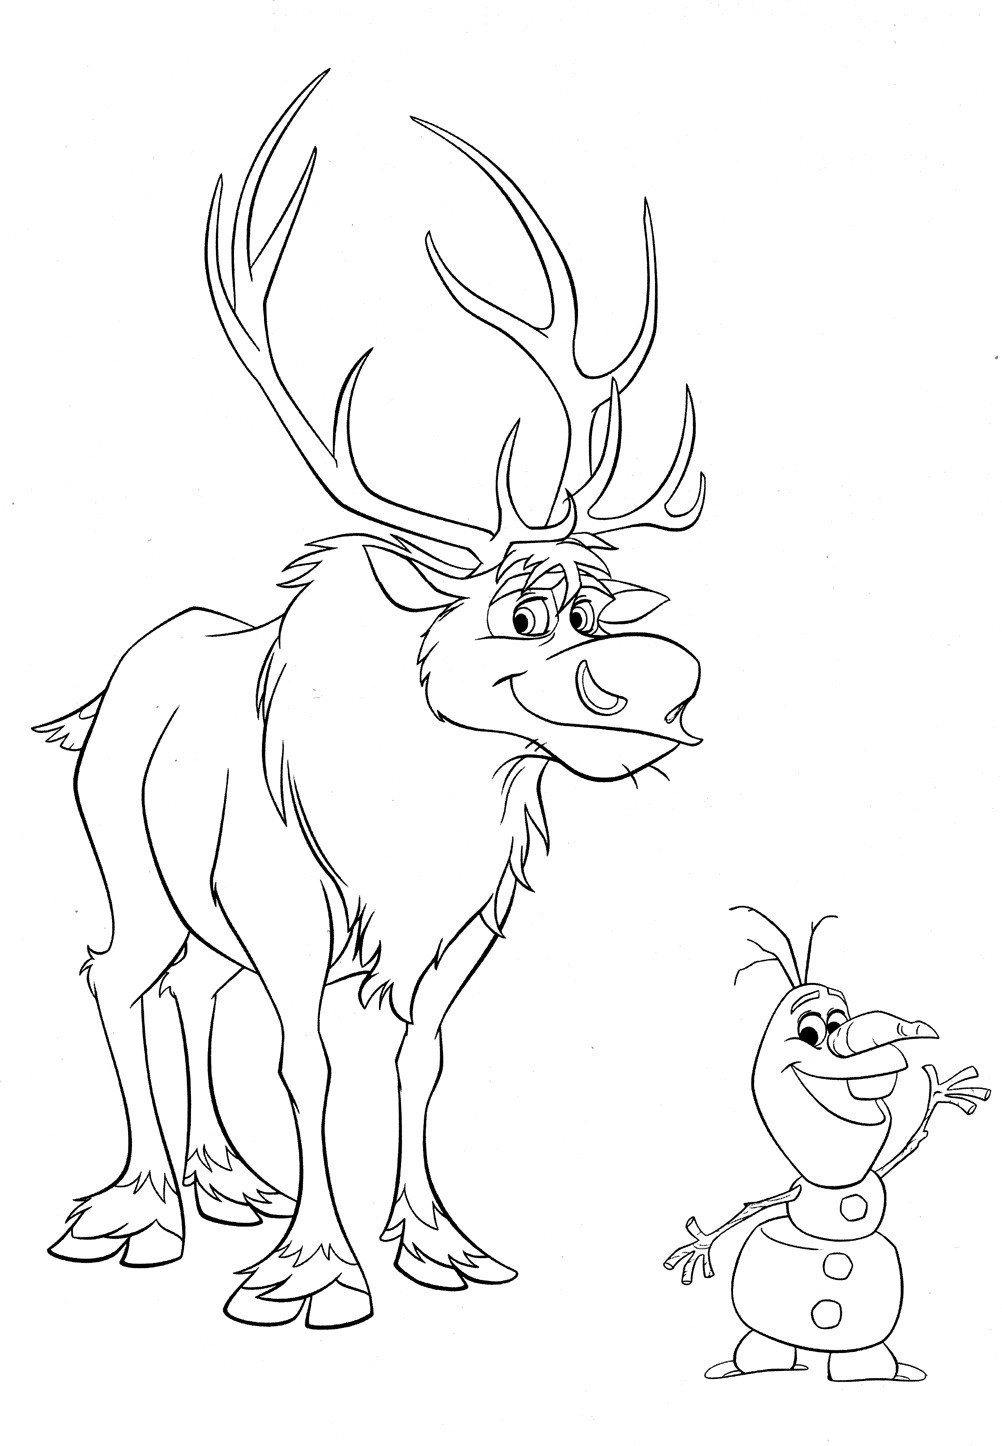 Disney Frozen Coloring Pages  Disney Frozen Coloring Pages To Download